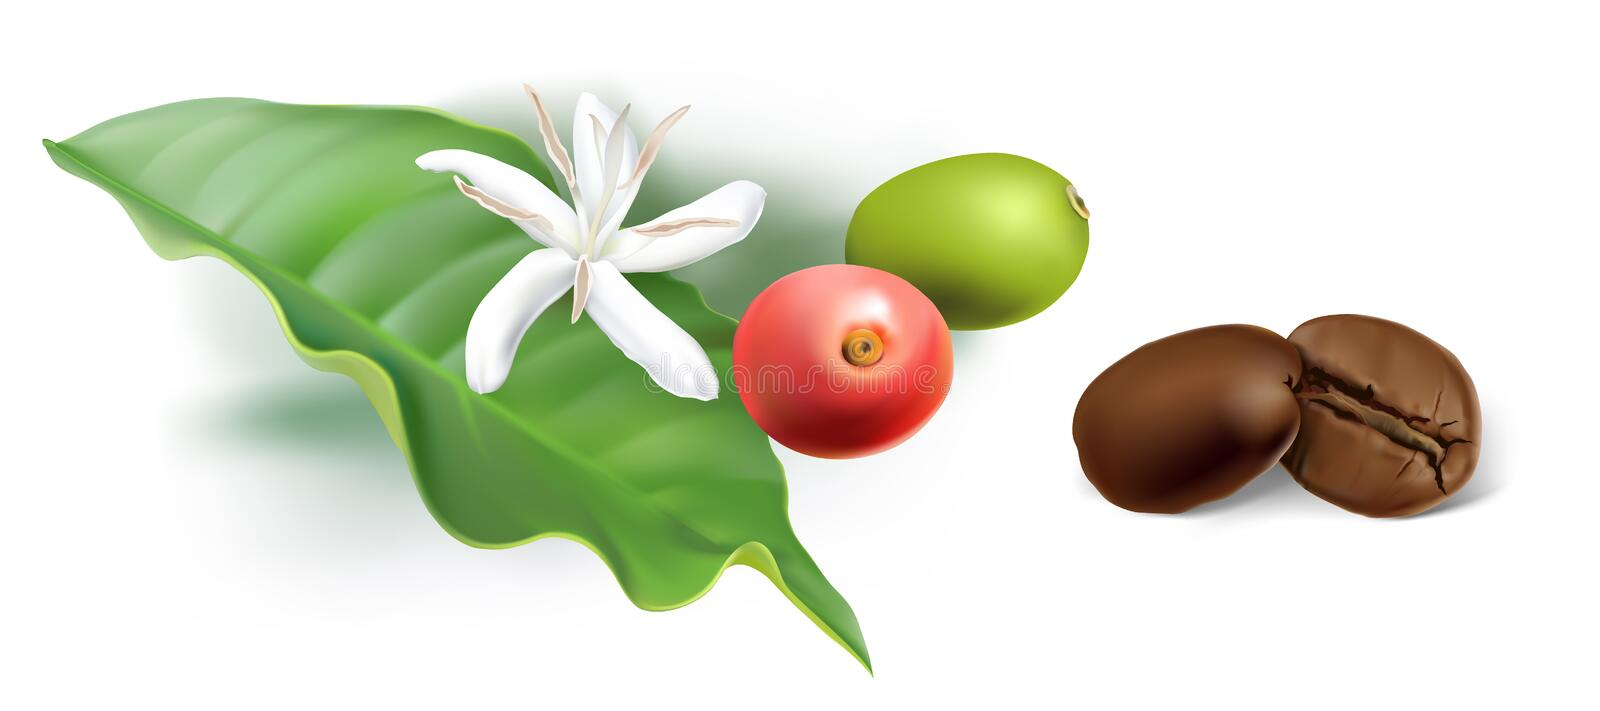 Coffee Beans roasted to perfection, coffee flower, berries and leaf. royalty free illustration